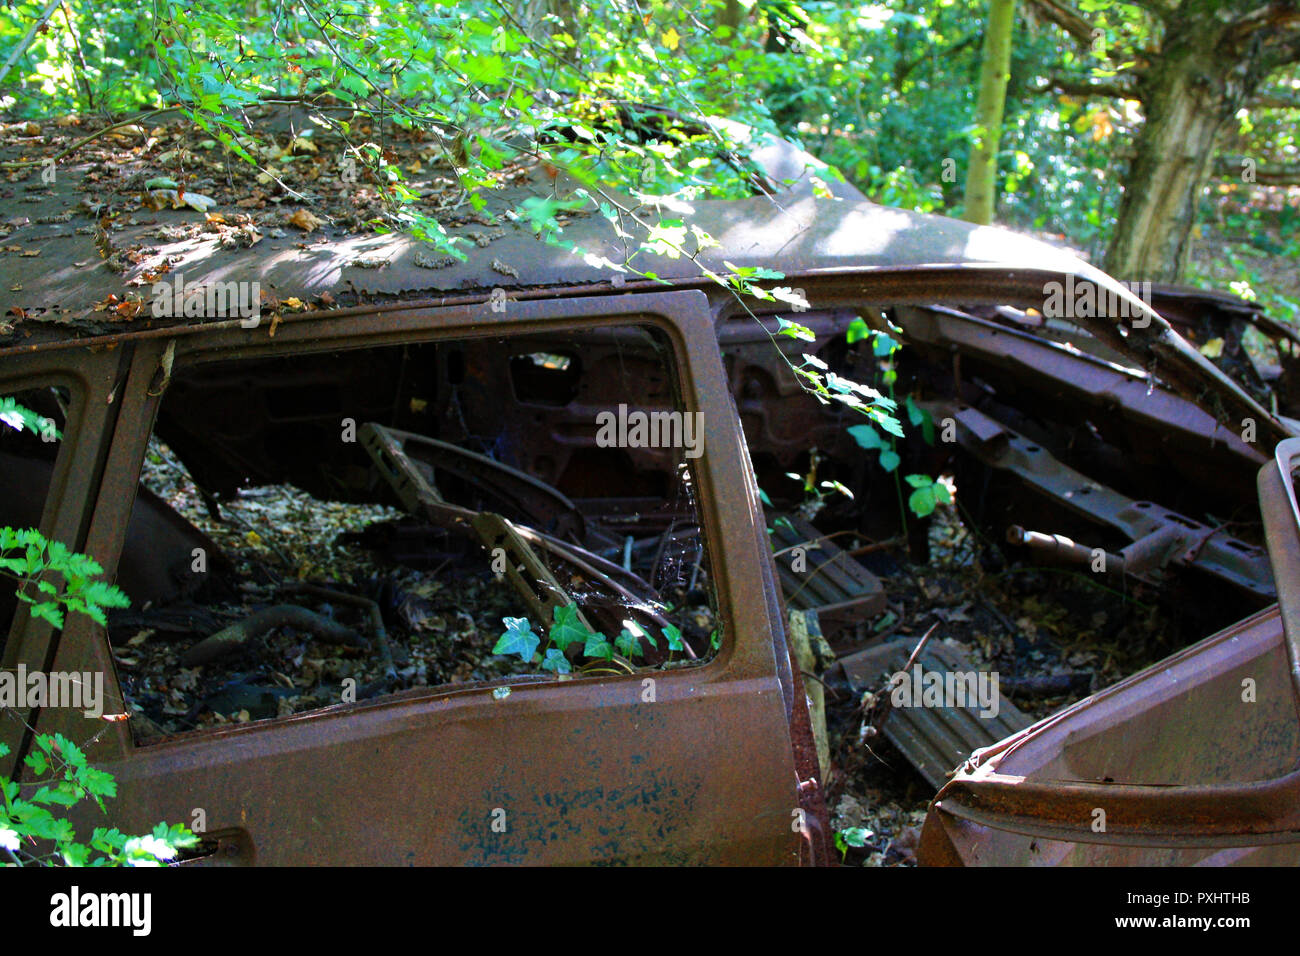 A rusty abandoned car in woods, Essex, England - Stock Image